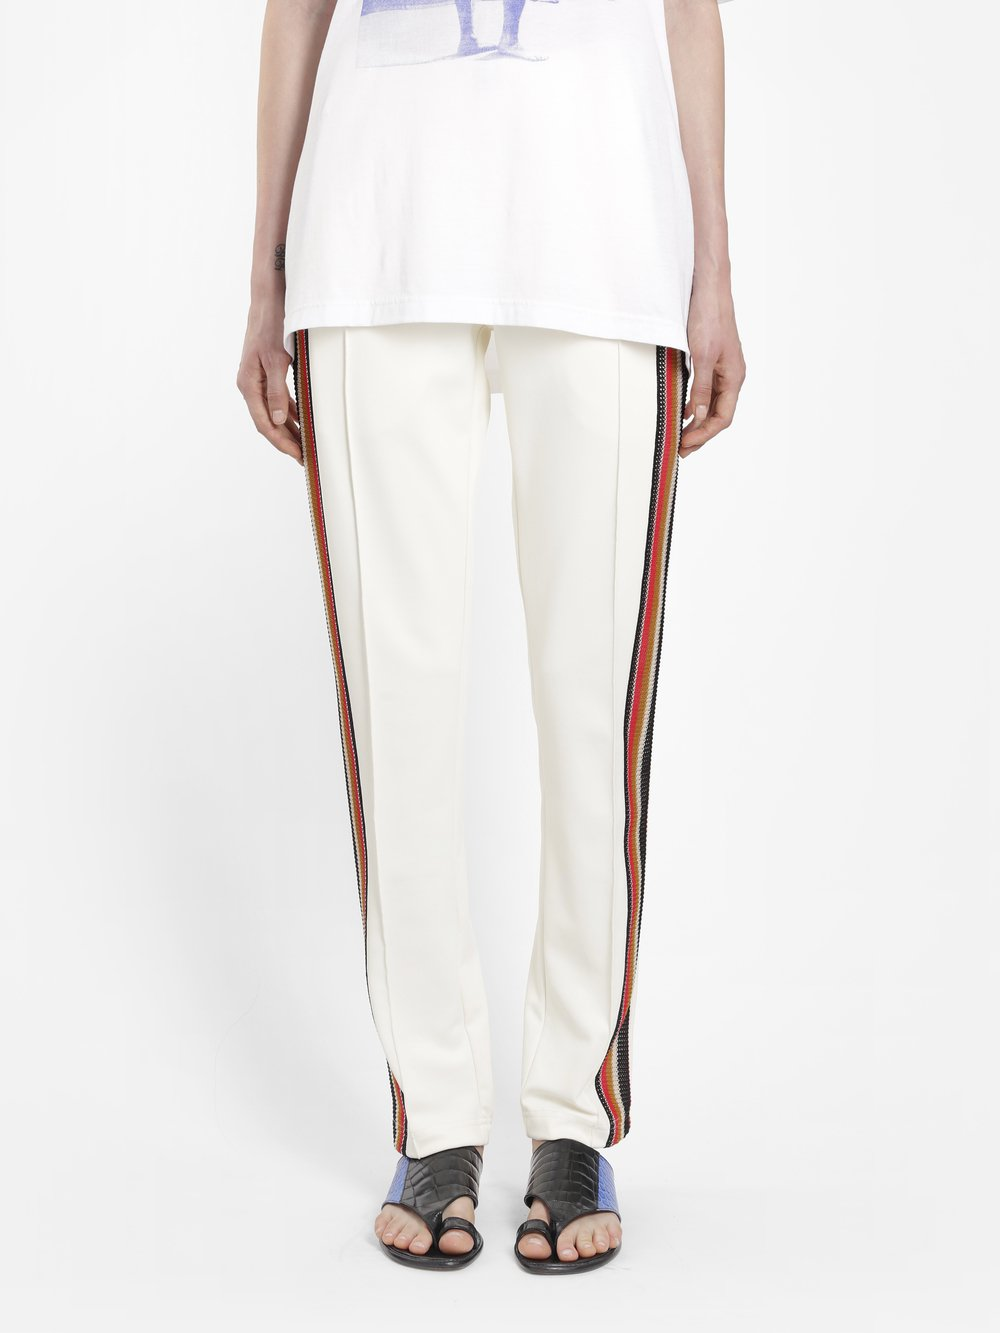 WALES BONNER WOMEN'S OFF-WHITE PALMS TRACKPANT WITH CROCHET DETAIL